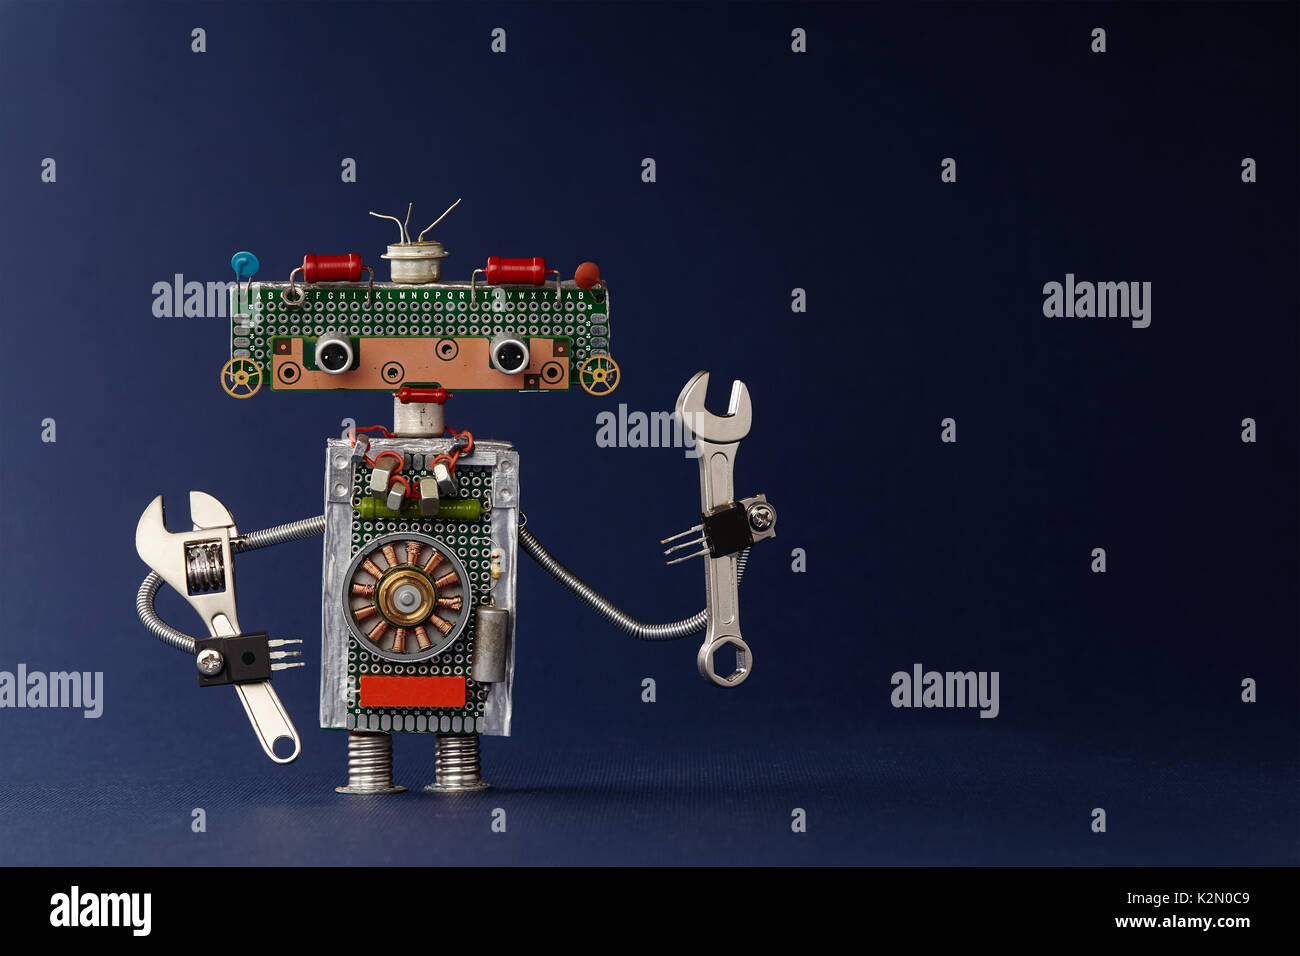 Hand wrench adjustable spanner robot handyman on dark blue paper background. Cute robotic toy made of electronic circuits, chip capacitors vintage resistors - Stock Image